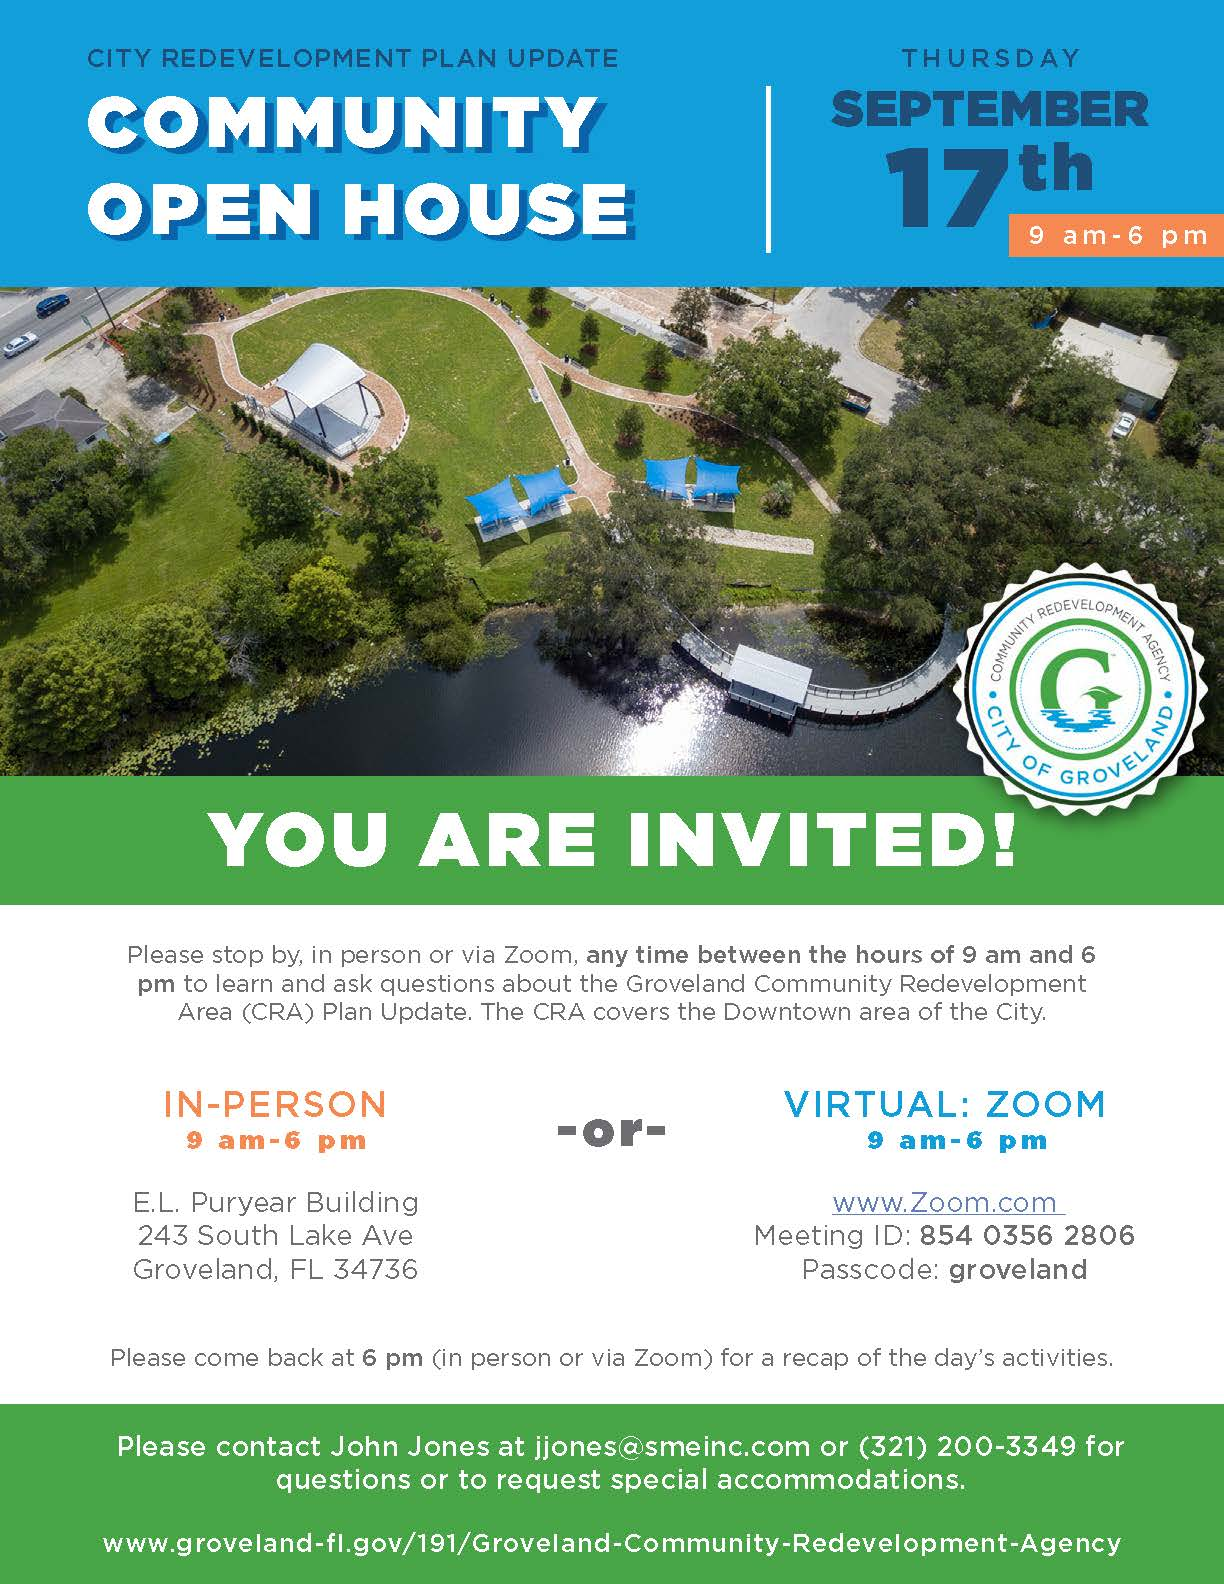 Groveland OpenHouse Invite_v3